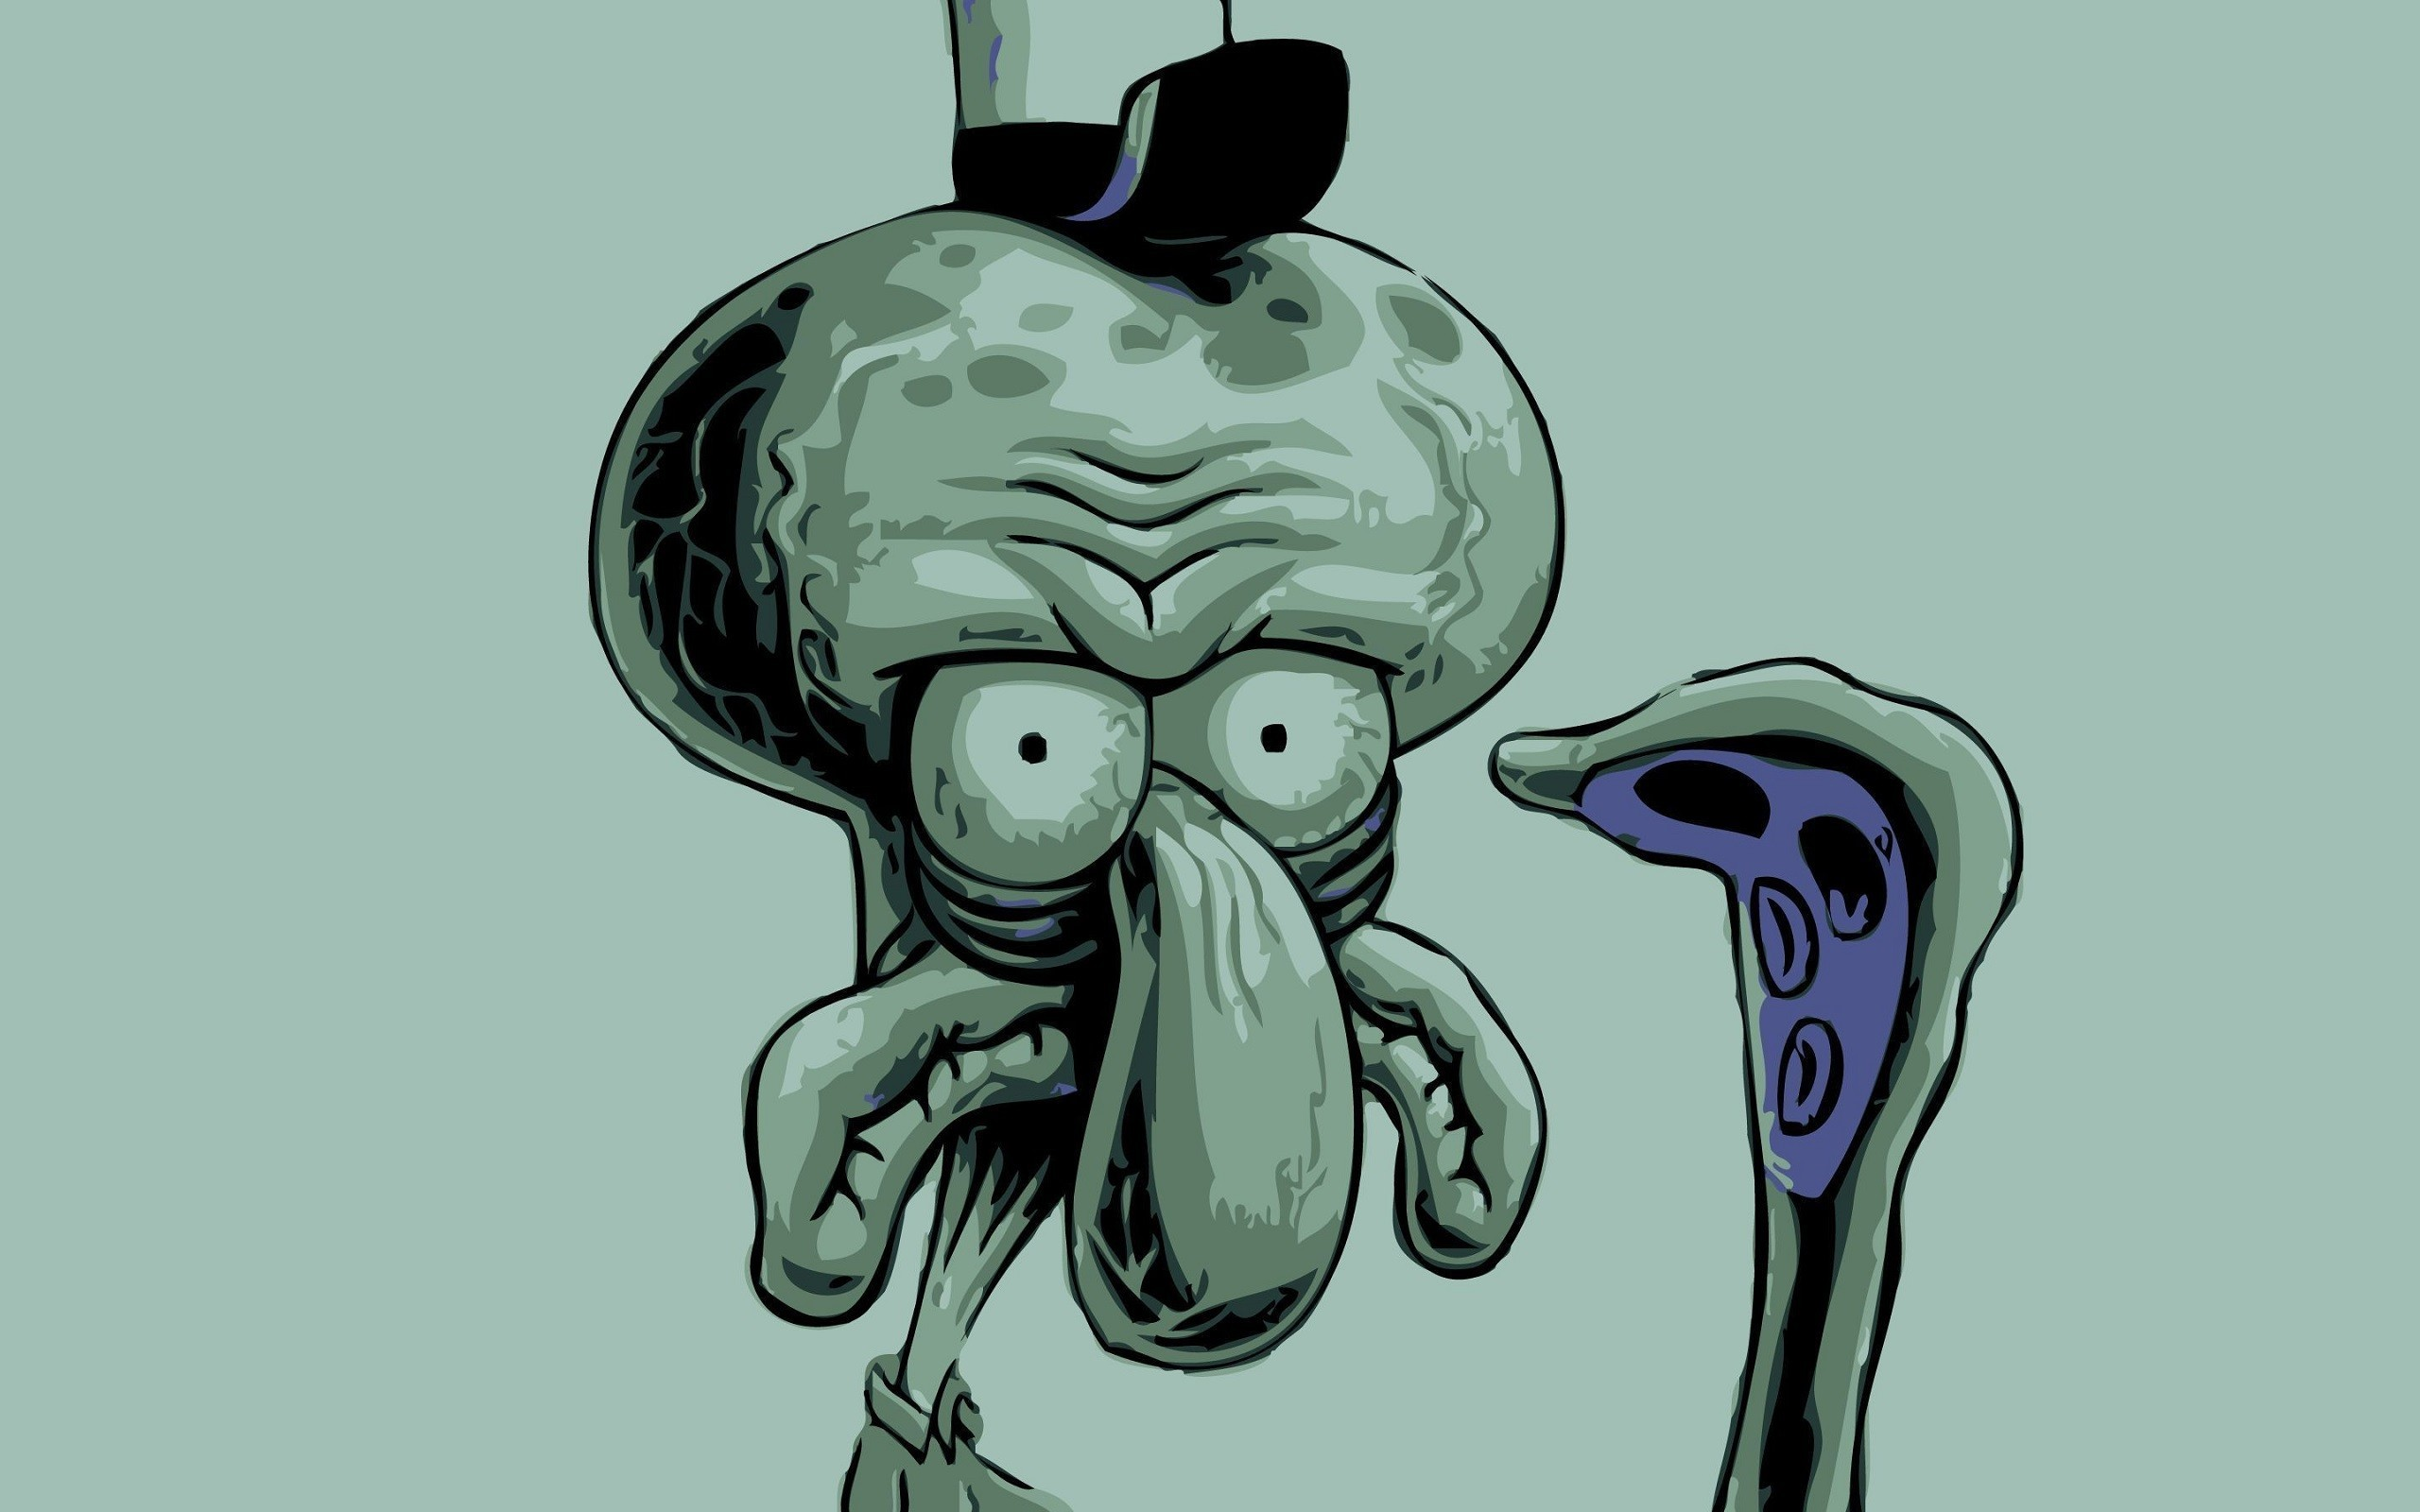 Res: 2560x1600, #Squidward Tentacles, #SpongeBob SquarePants wallpaper